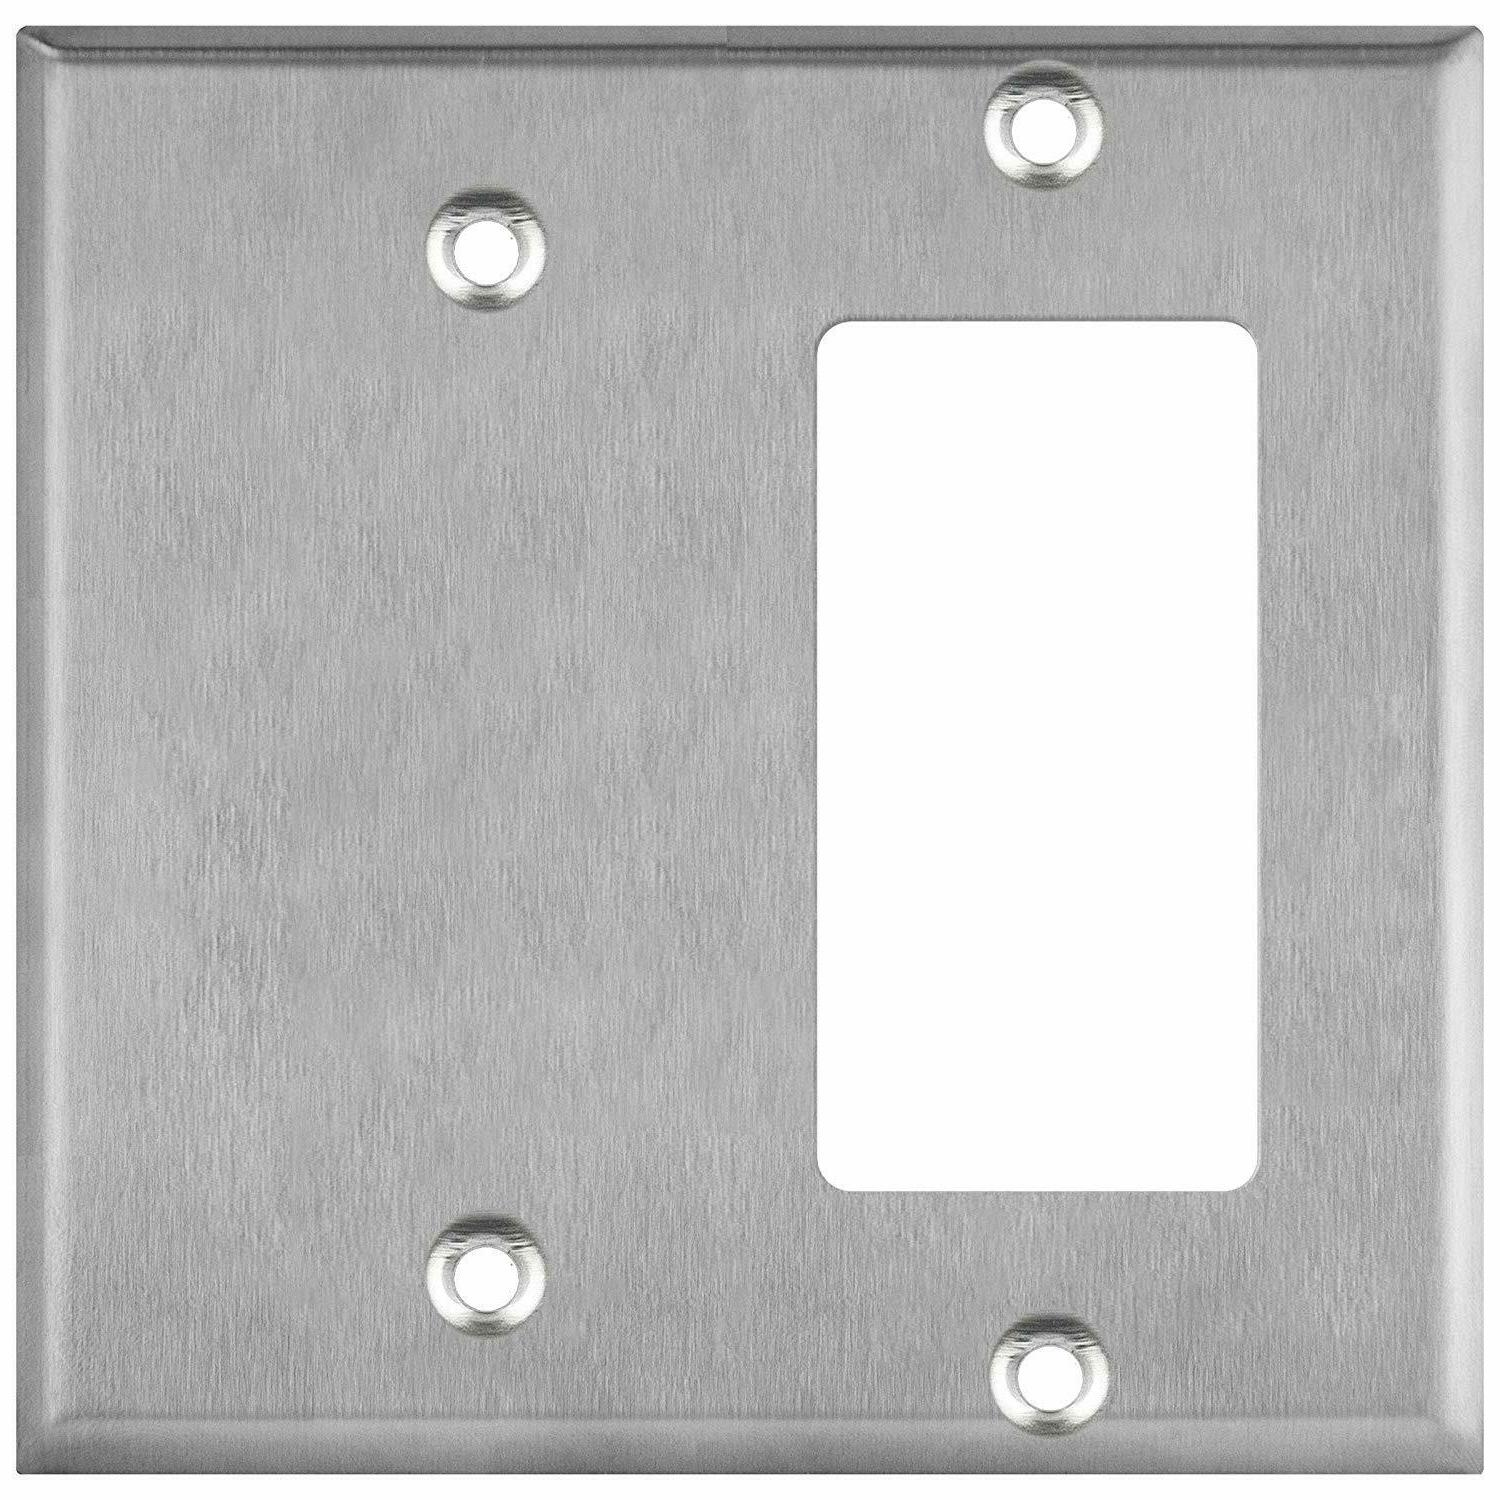 combination wall plate blank decorator switch cover